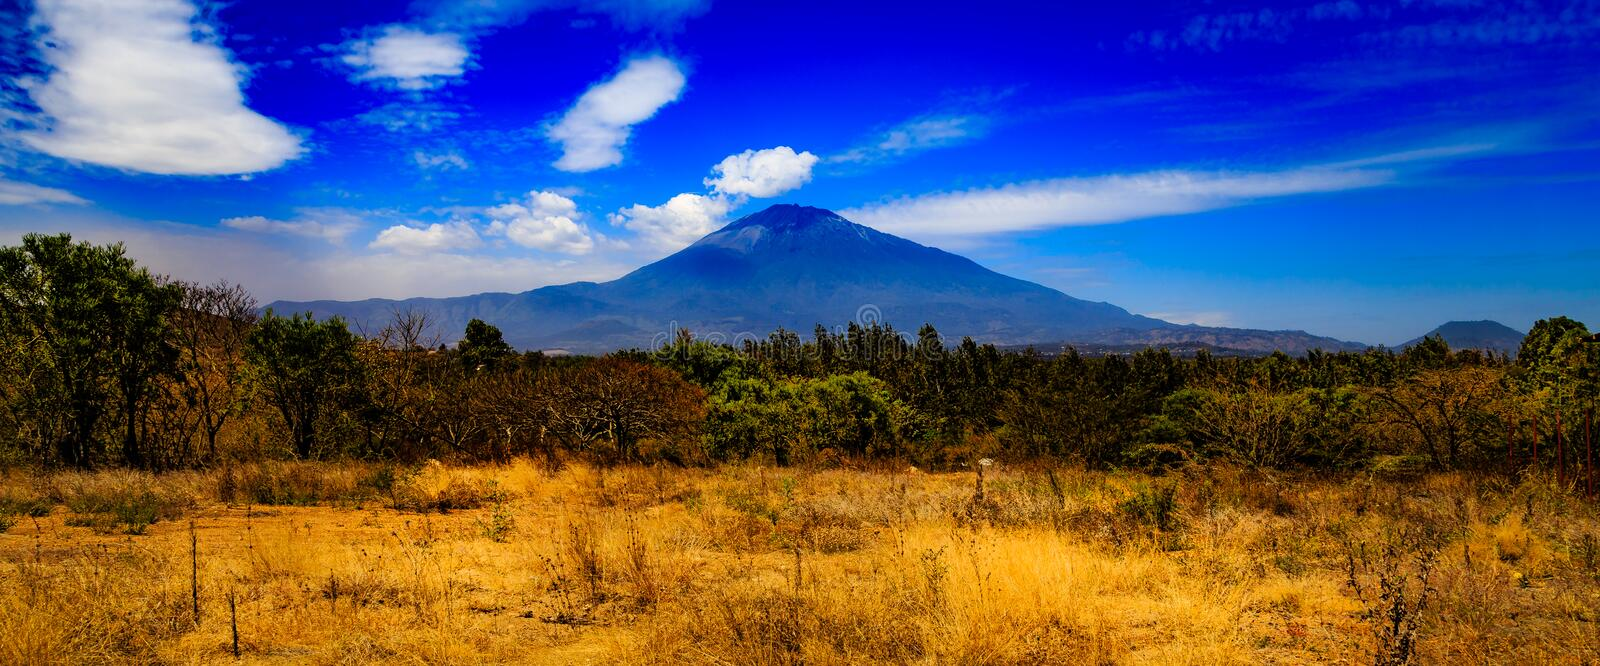 Mount Meru in Tanzania. Mount Meru is an active stratovolcano located 70 kilometres (43 mi) west of Mount Kilimanjaro in the nation of Tanzania royalty free stock photography